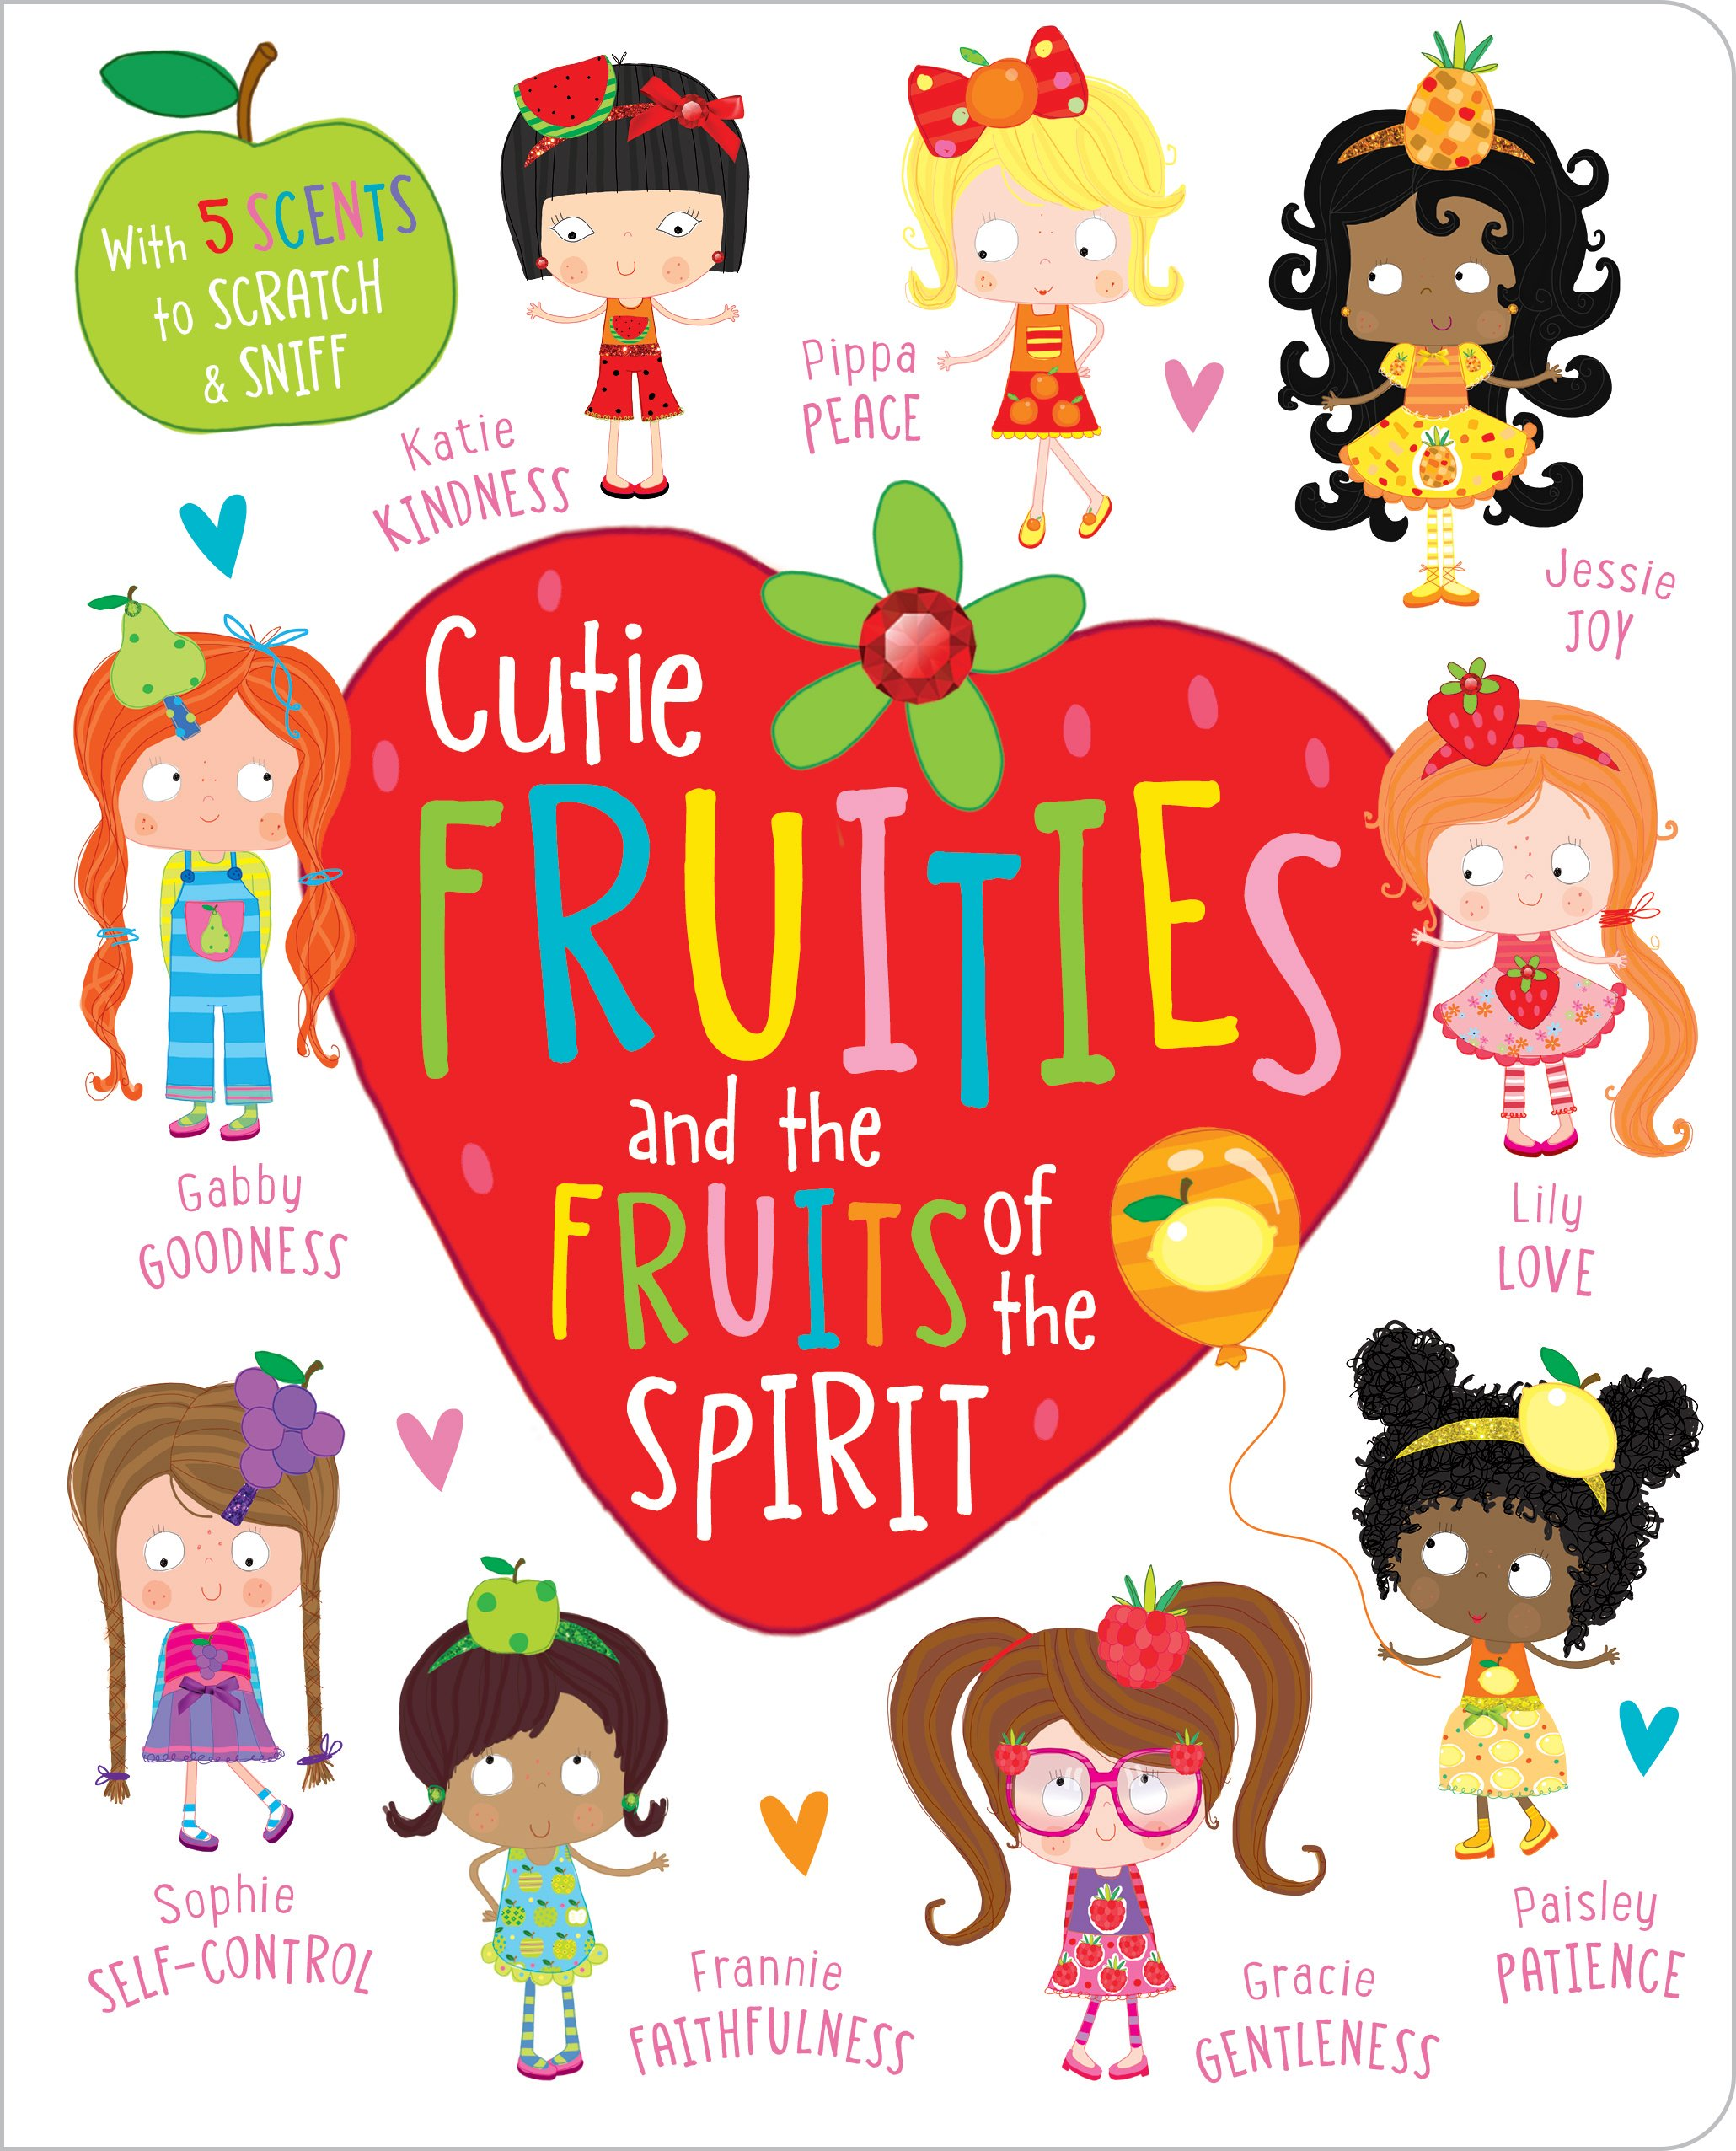 Cutie Fruities and the Fruit of the Spirit: 9781788930024: Amazon.